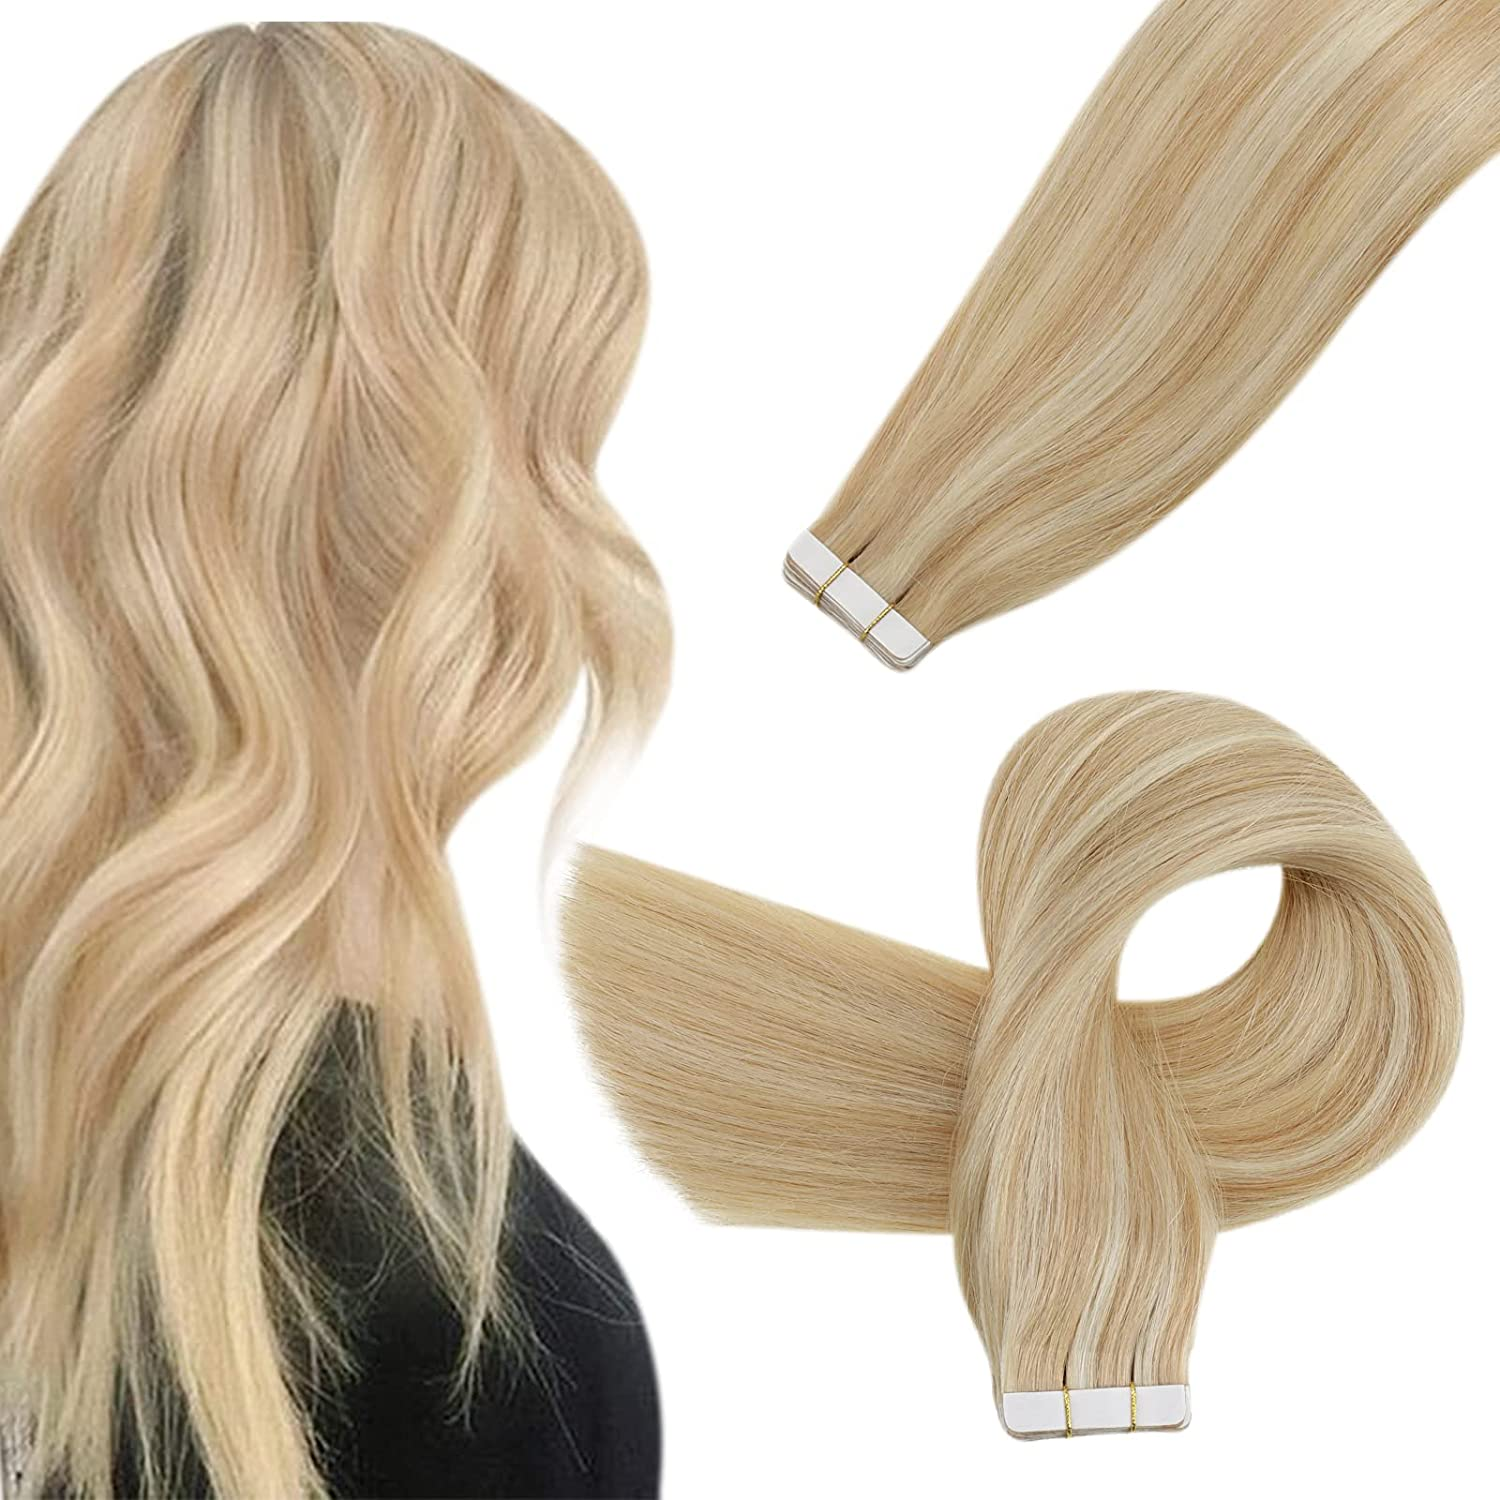 Easyouth Ranking TOP14 Human Hair Washington Mall Tape in Extensions 22 Inch In Remy Real